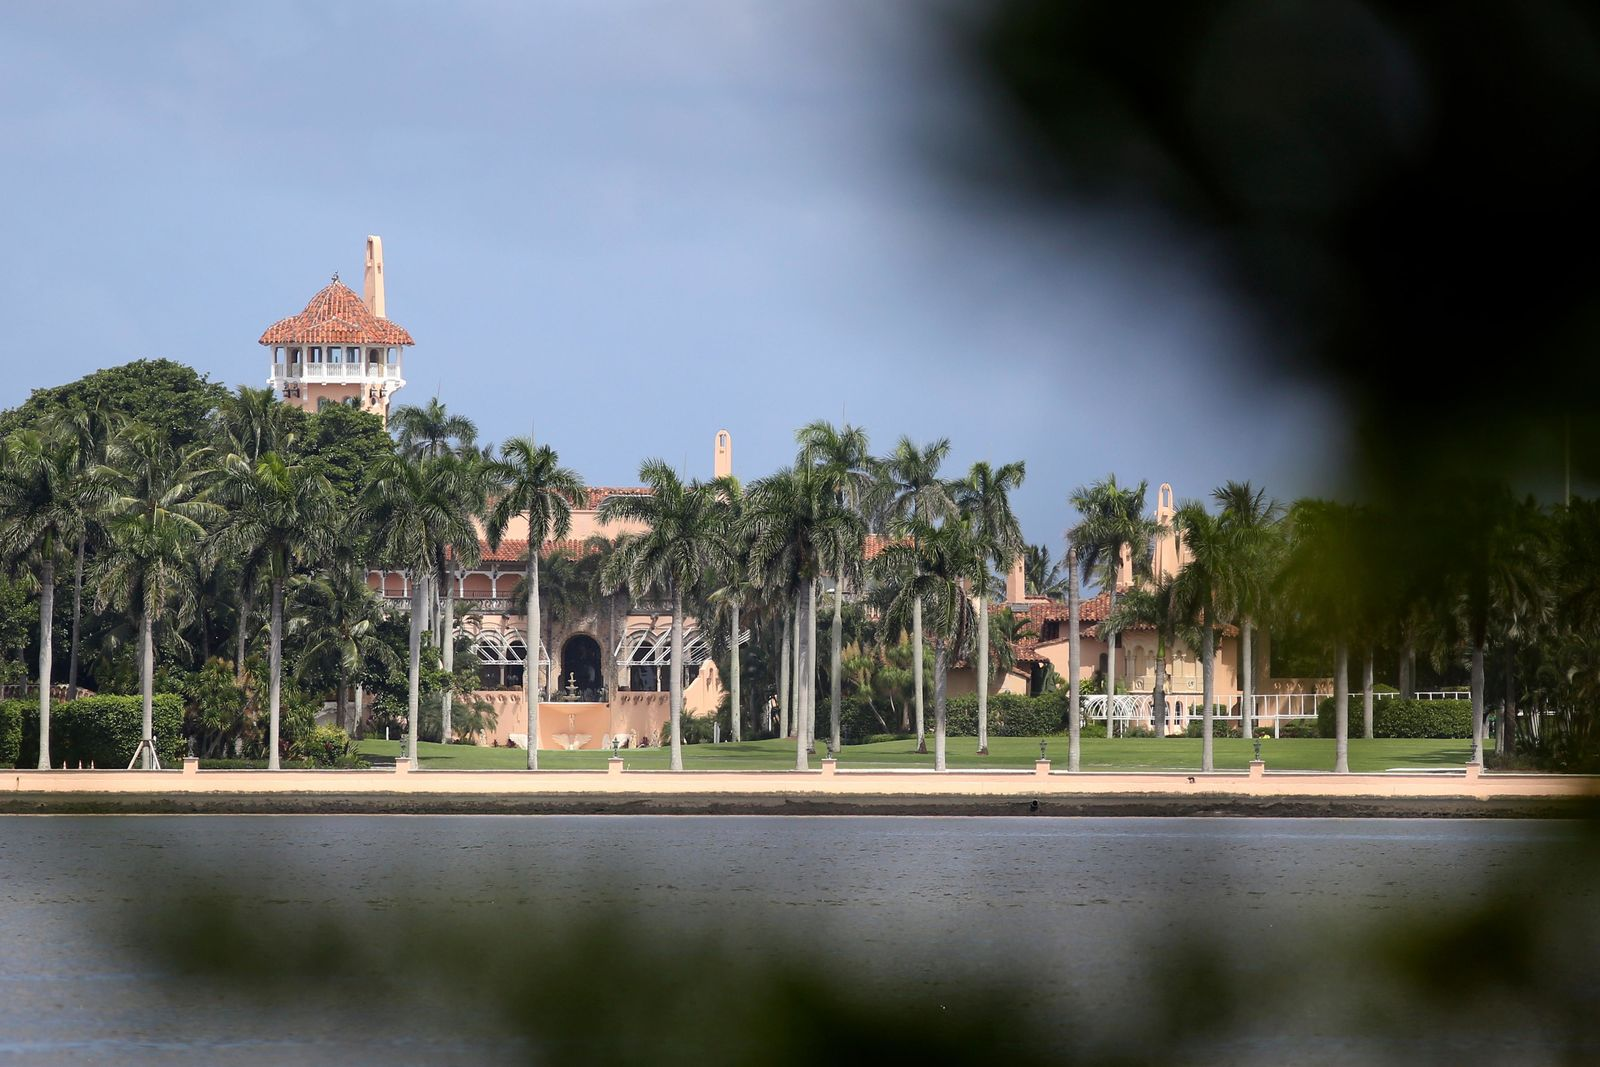 President Donald Trump's Mar-a-Lago resort is shown, Friday, Aug. 30, 2019, in Palm Beach, Fla. (AP Photo/Lynne Sladky)